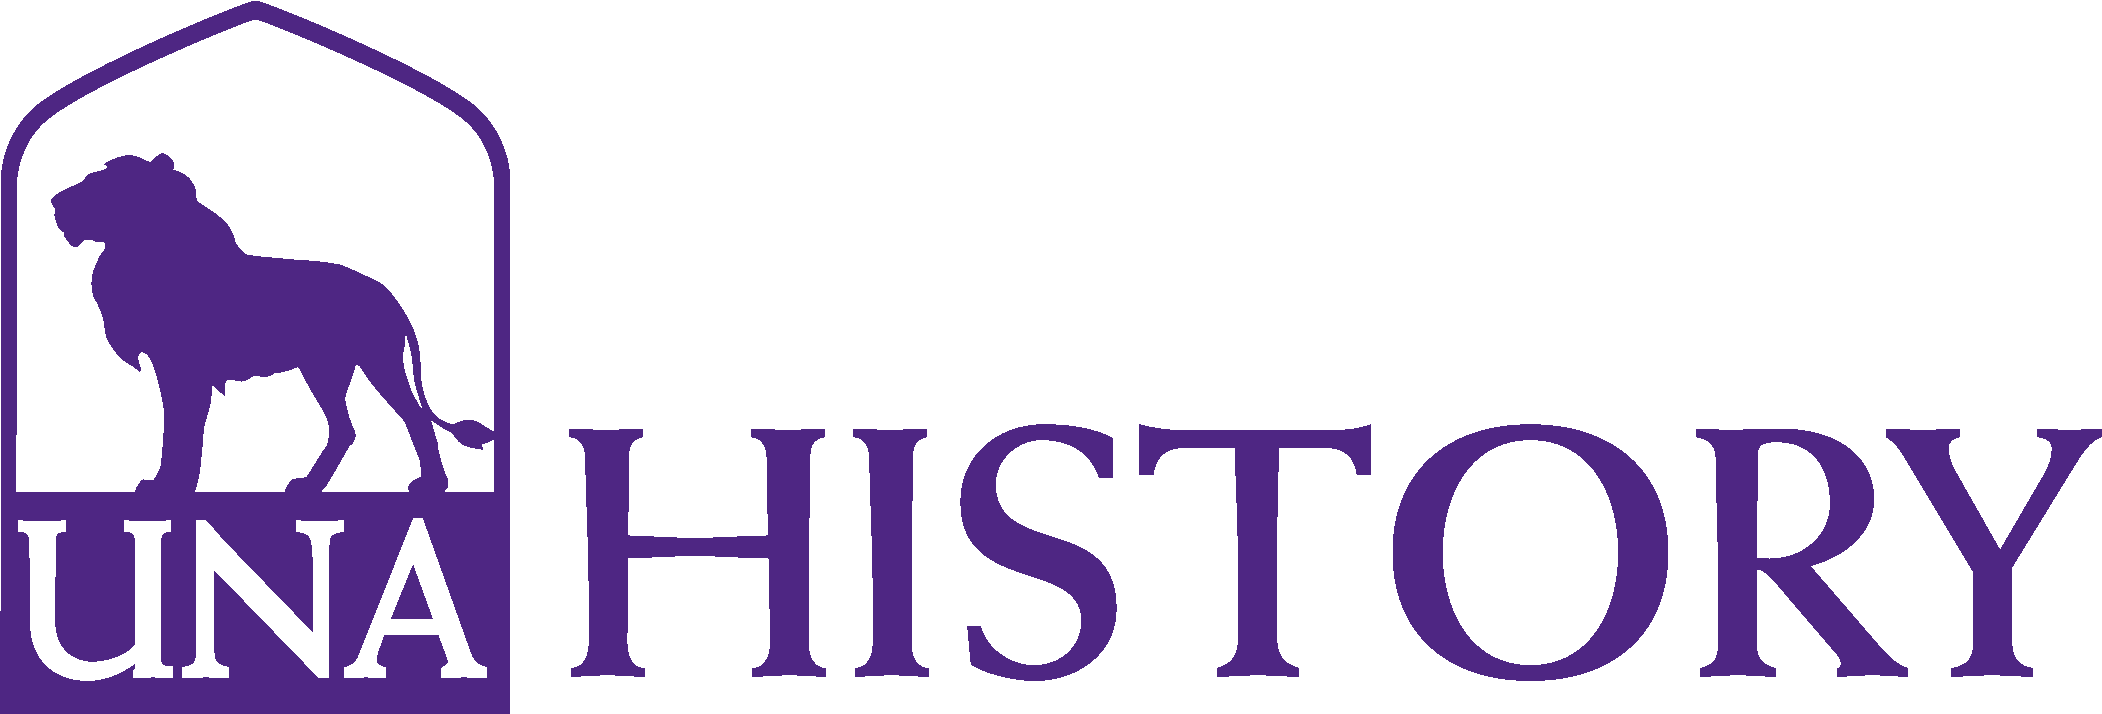 College of Arts and Sciences - History Logo - Purple - Version 3